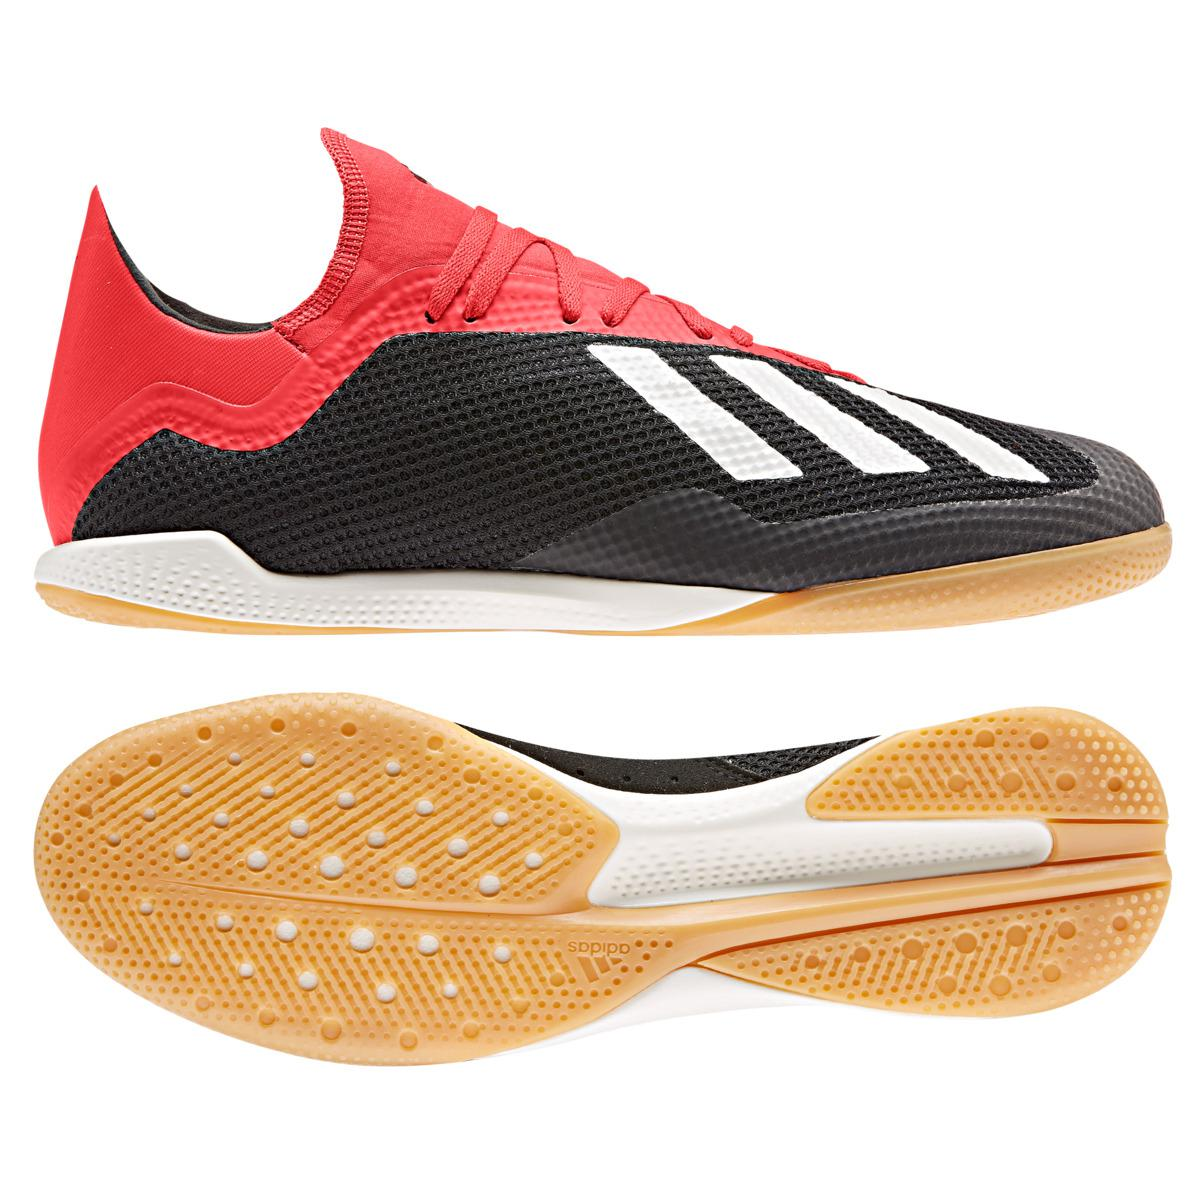 2c7eb0fcf Adidas - Red X 18.3 In Indoor Football Boots for Men - Lyst. View fullscreen